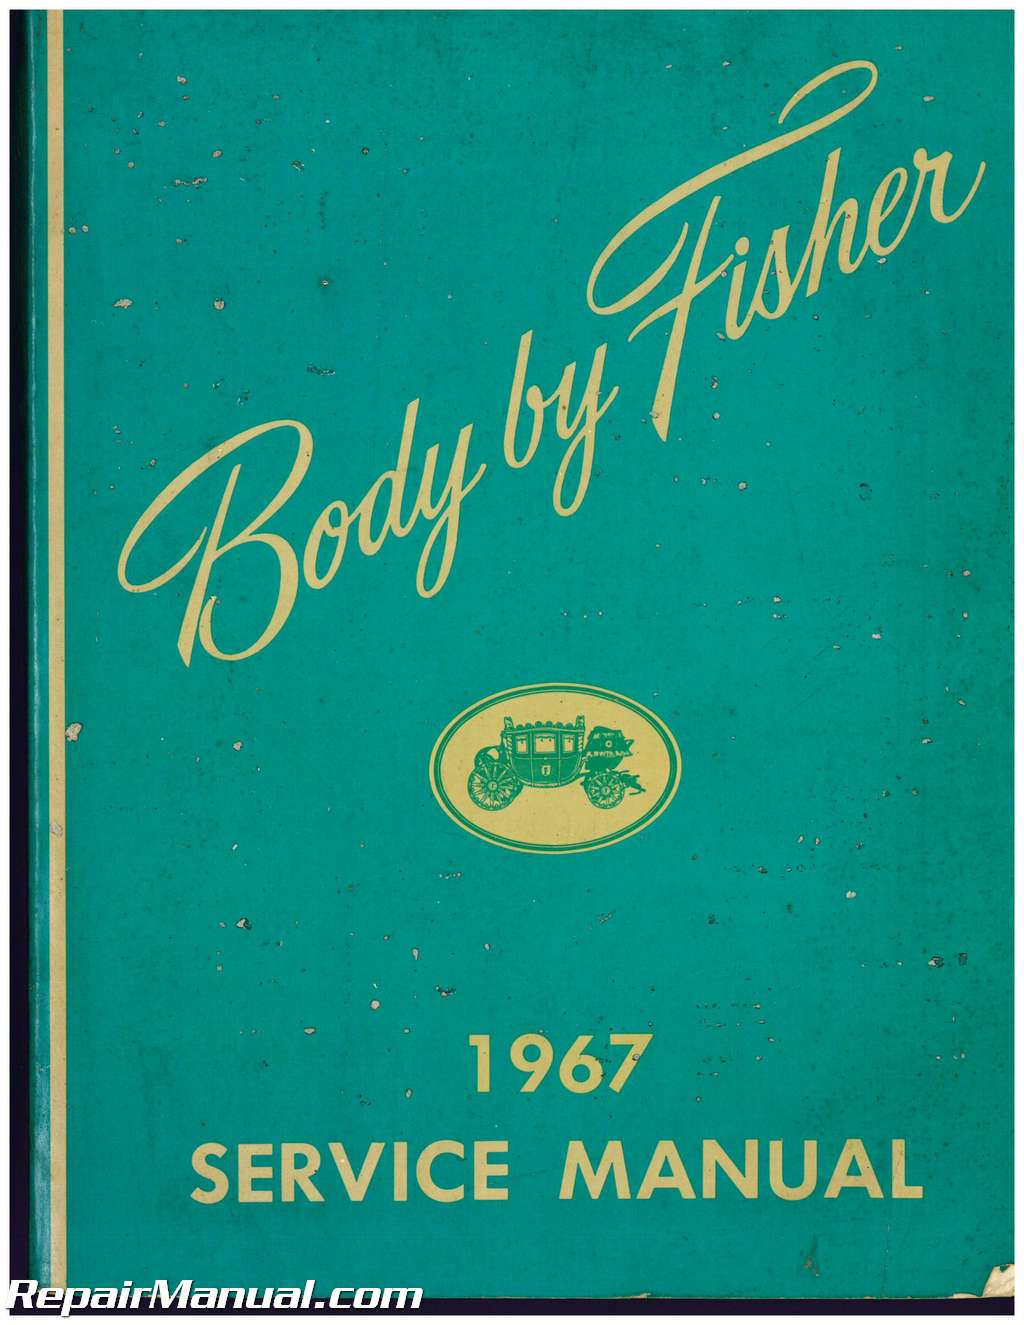 used 1967 fisher body service manual all body styles Fisher Body Assembly Line Fisher Body Plant Detroit